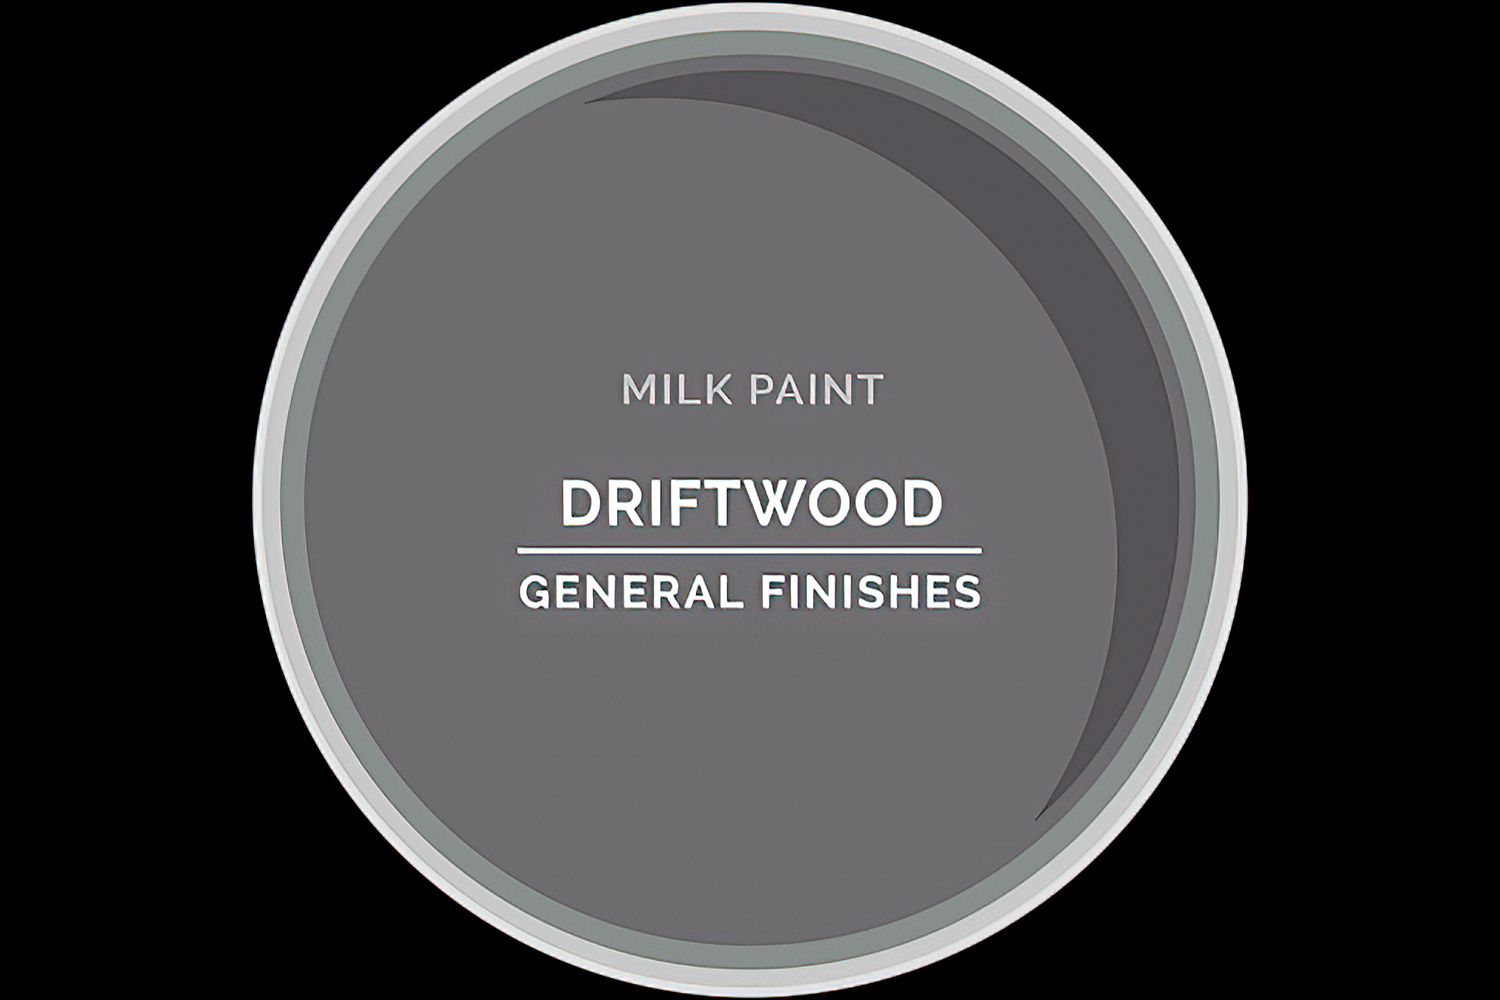 Color Chip Milk Paint DRIFTWOOD General Finishes Copy